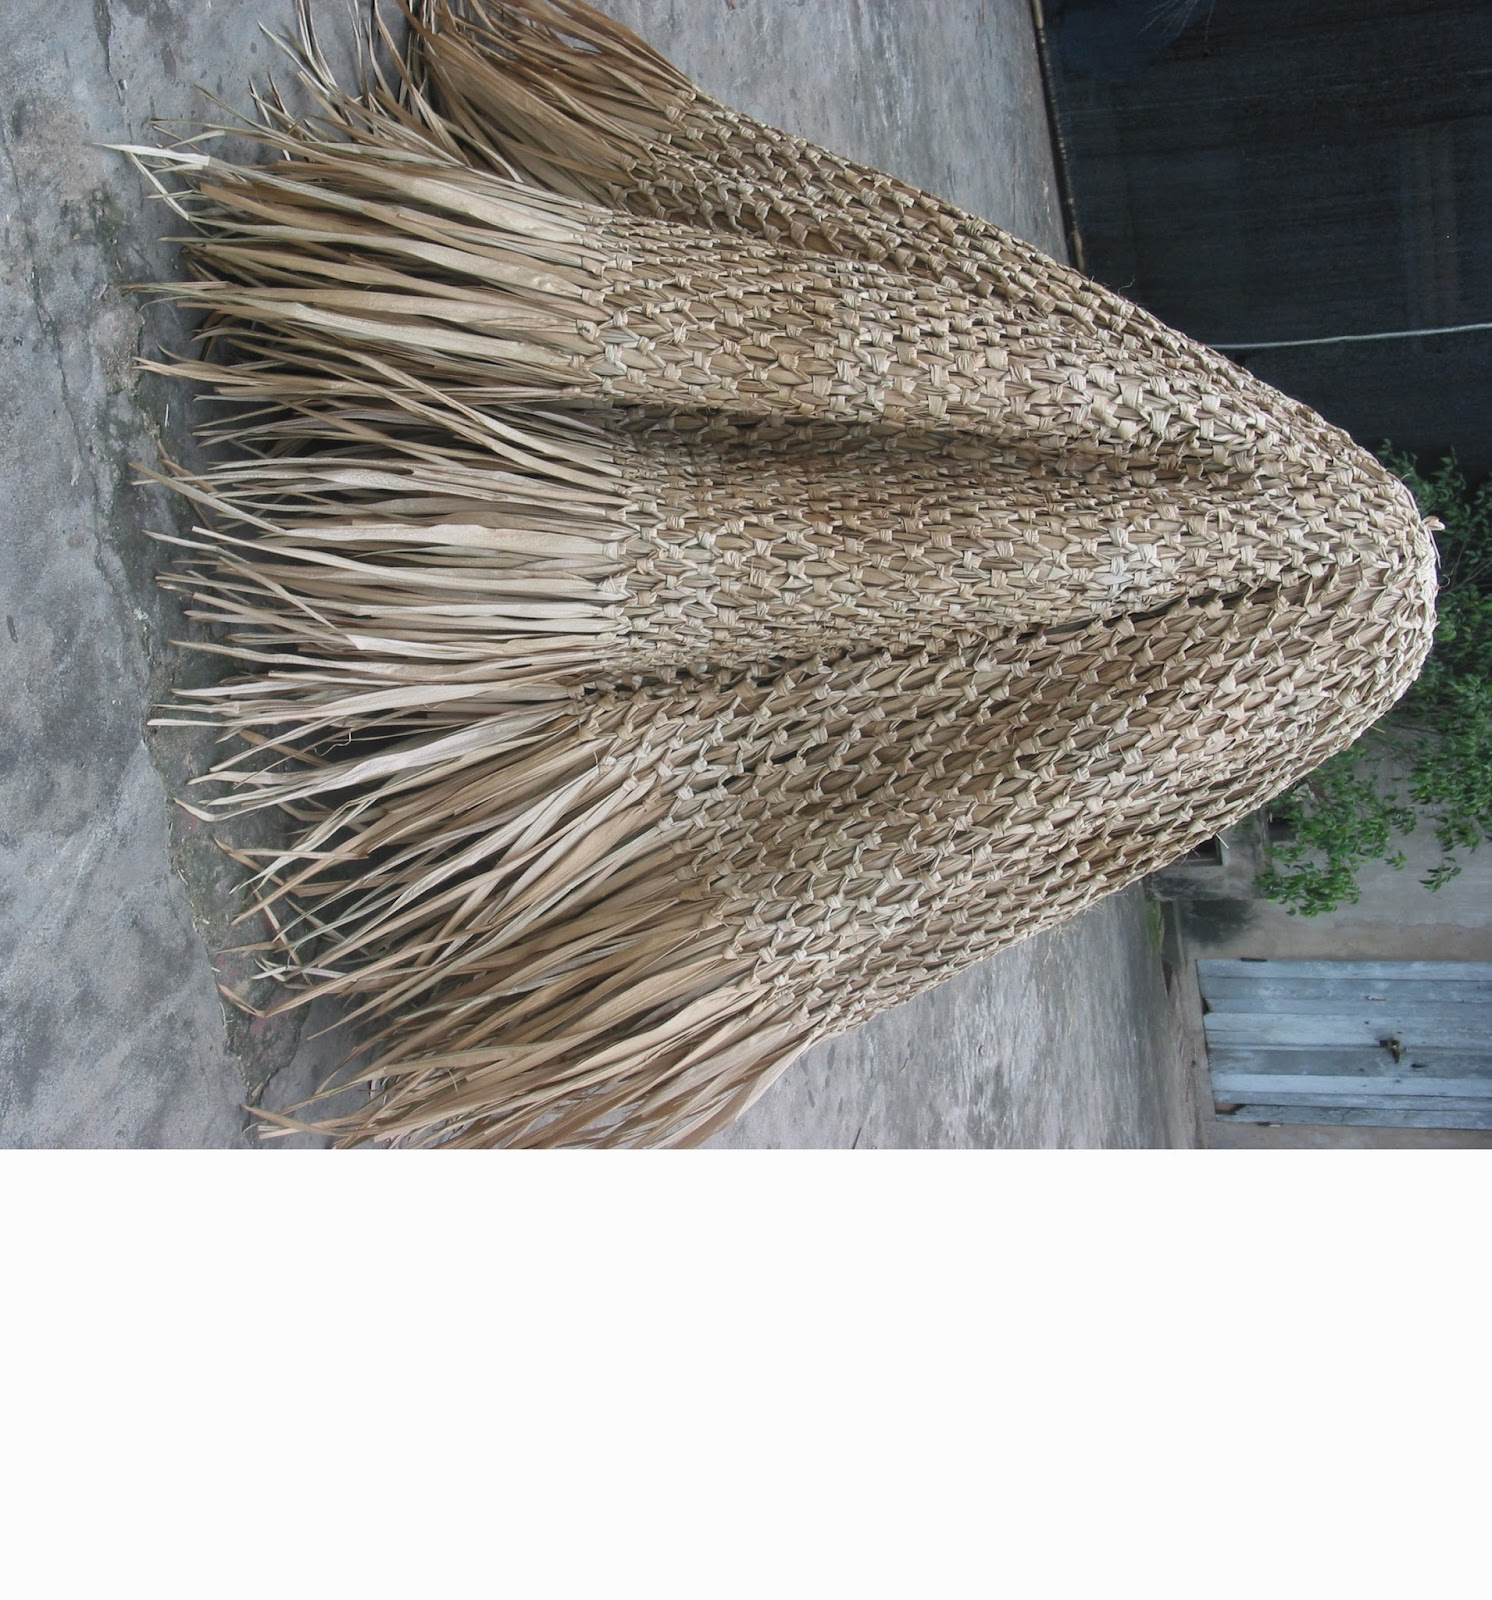 Hunt Duck Blinds Palm Thatch Panel Umbrella Cover Thatching Tiki Bar Decor Tropical Theme Building W Roof